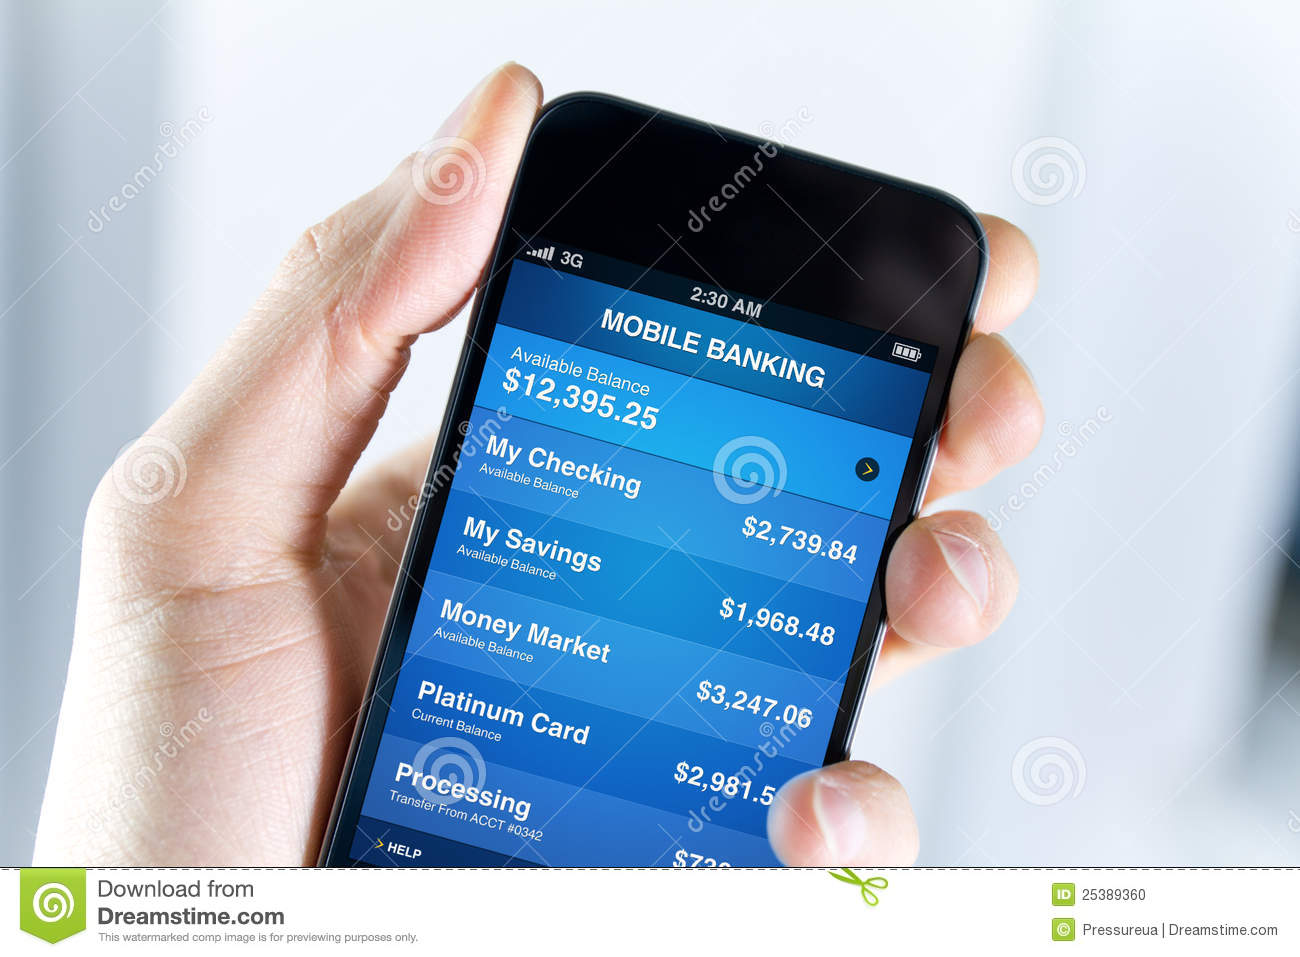 Mobile Banking On Apple iPhone